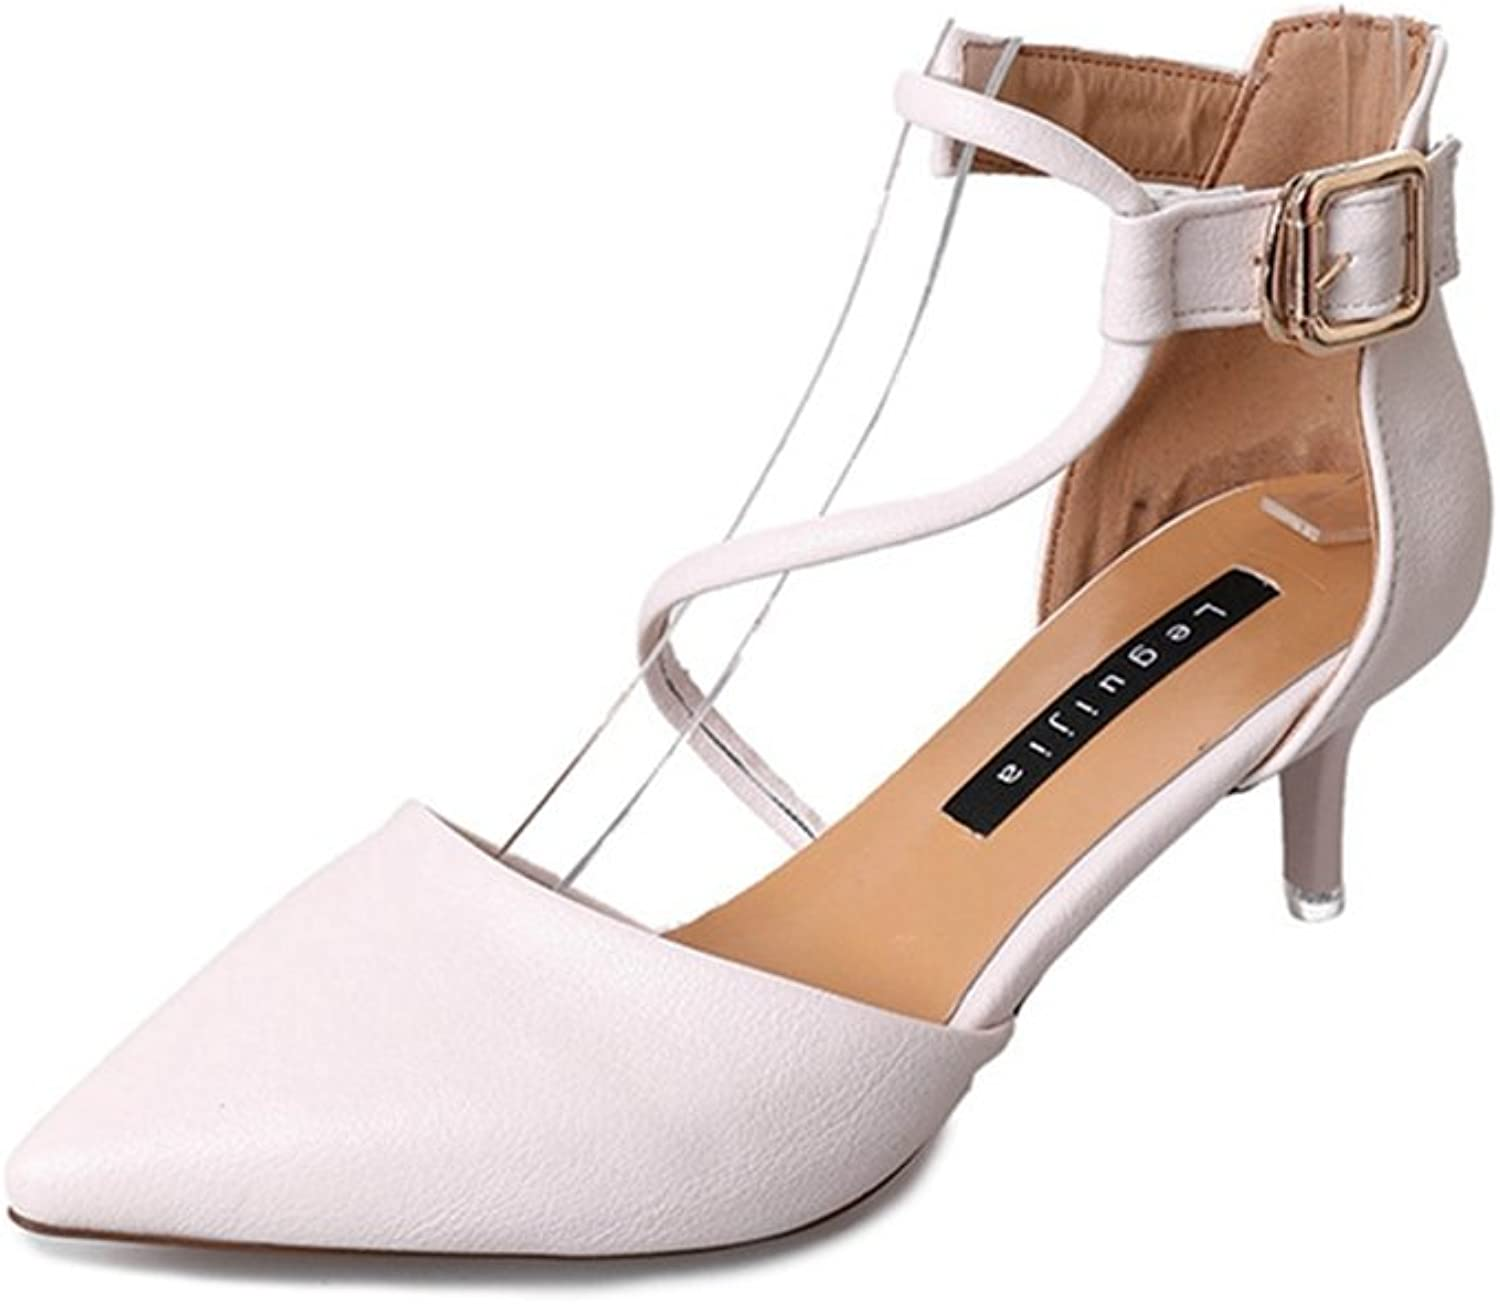 Zarbrina Womens Mid Heels Stiletto Sandals Ladies Fashion Pointed Toe Adjustable Ankle Strap Dress shoes